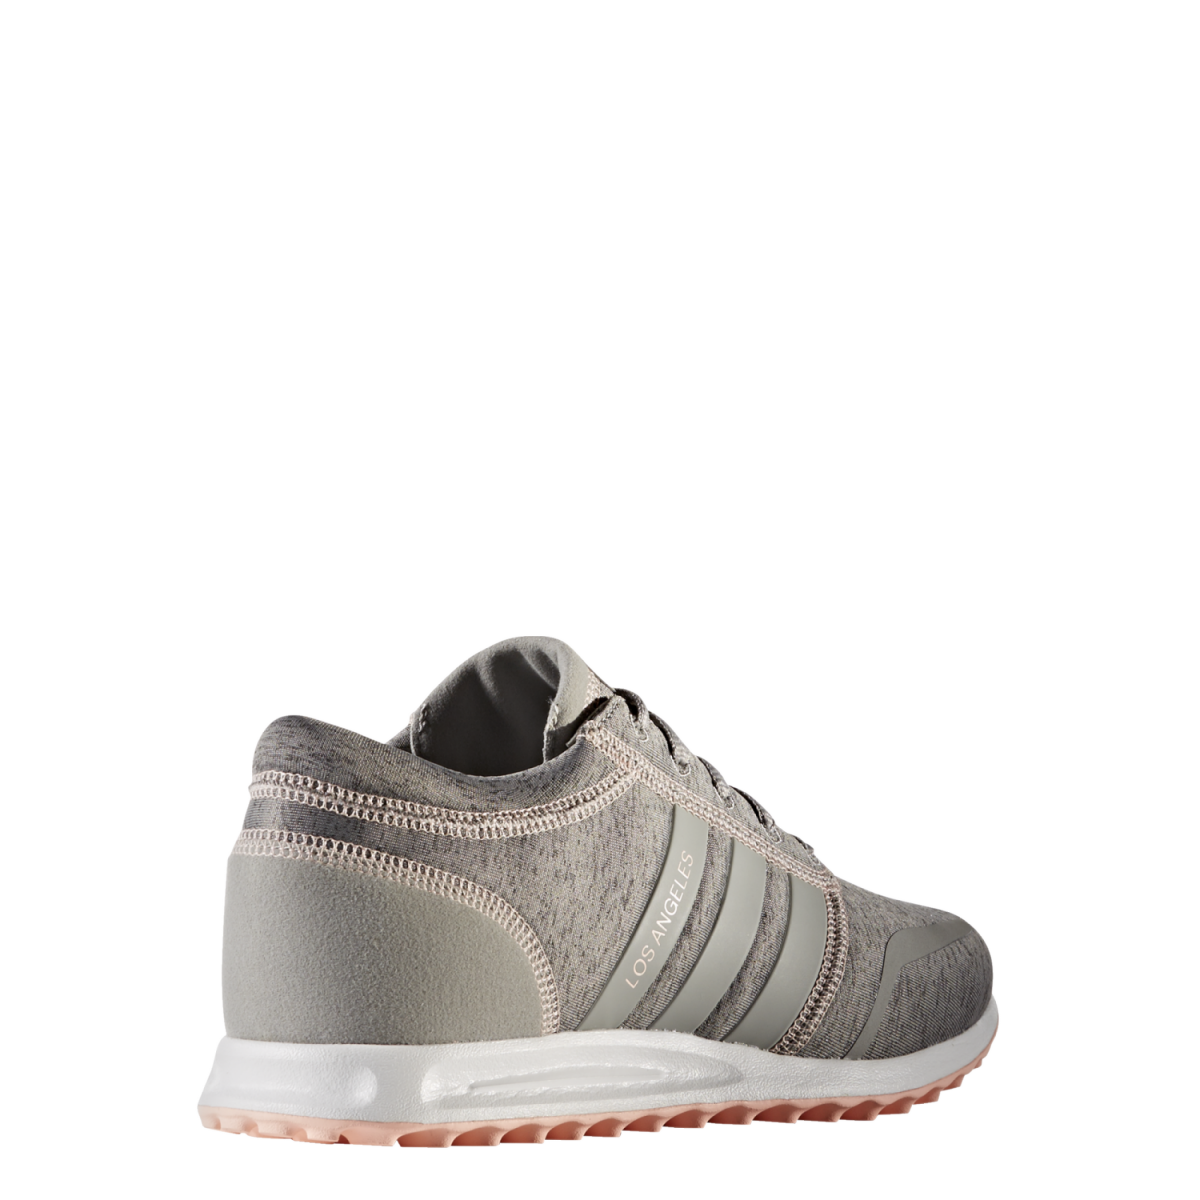 adidas Originals Los Angeles Sneaker Damen Schuhe grau. 1 · 2 ...